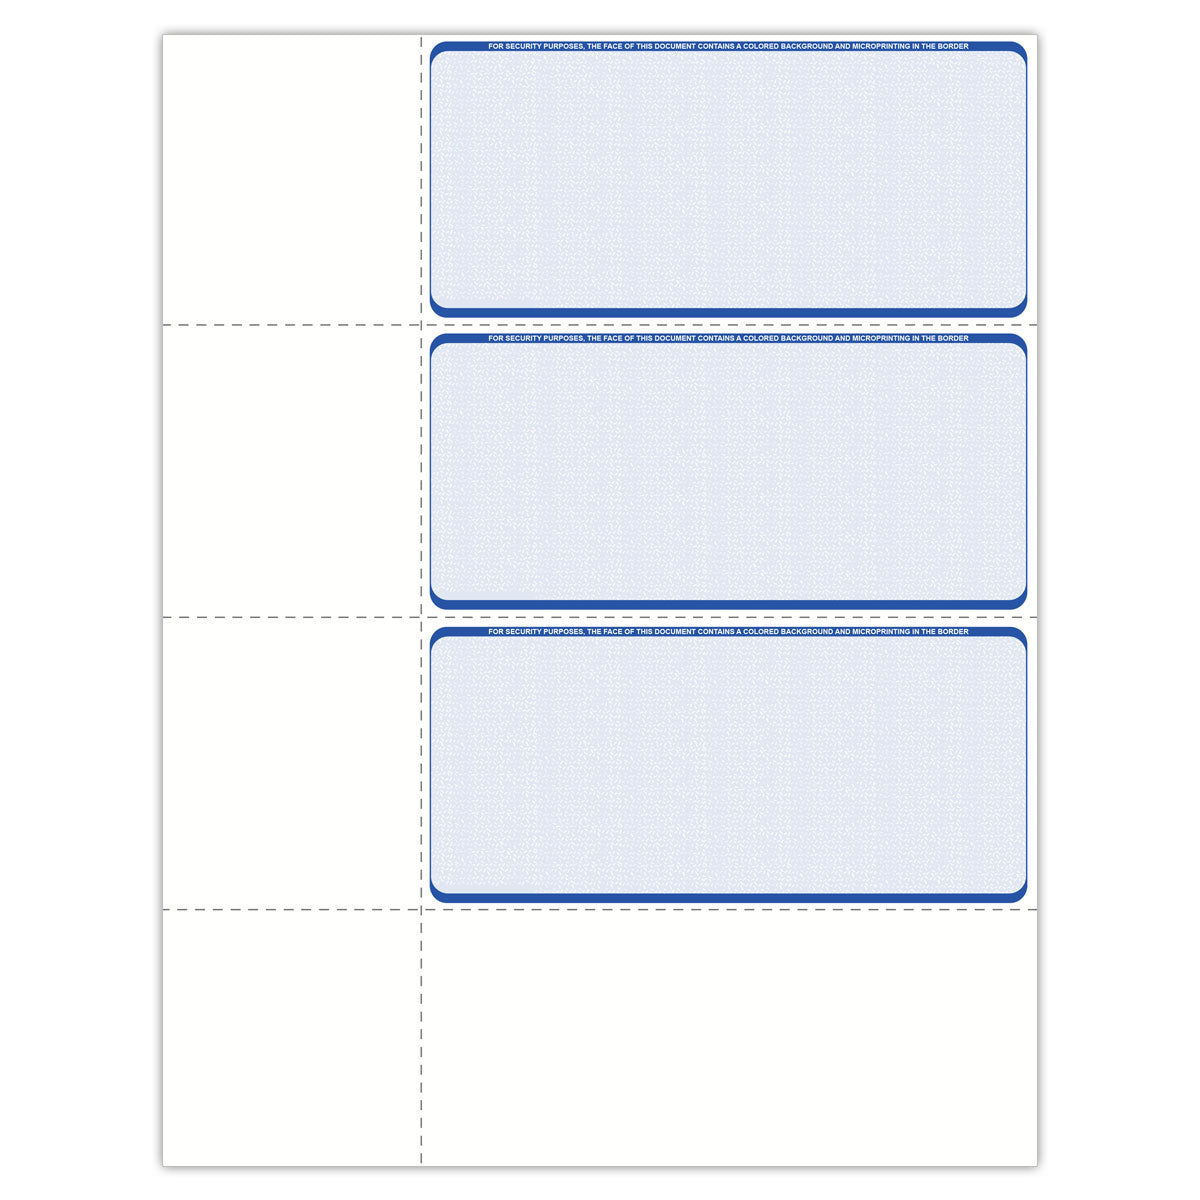 Wallet Format Blank Check Paper - Check Depot